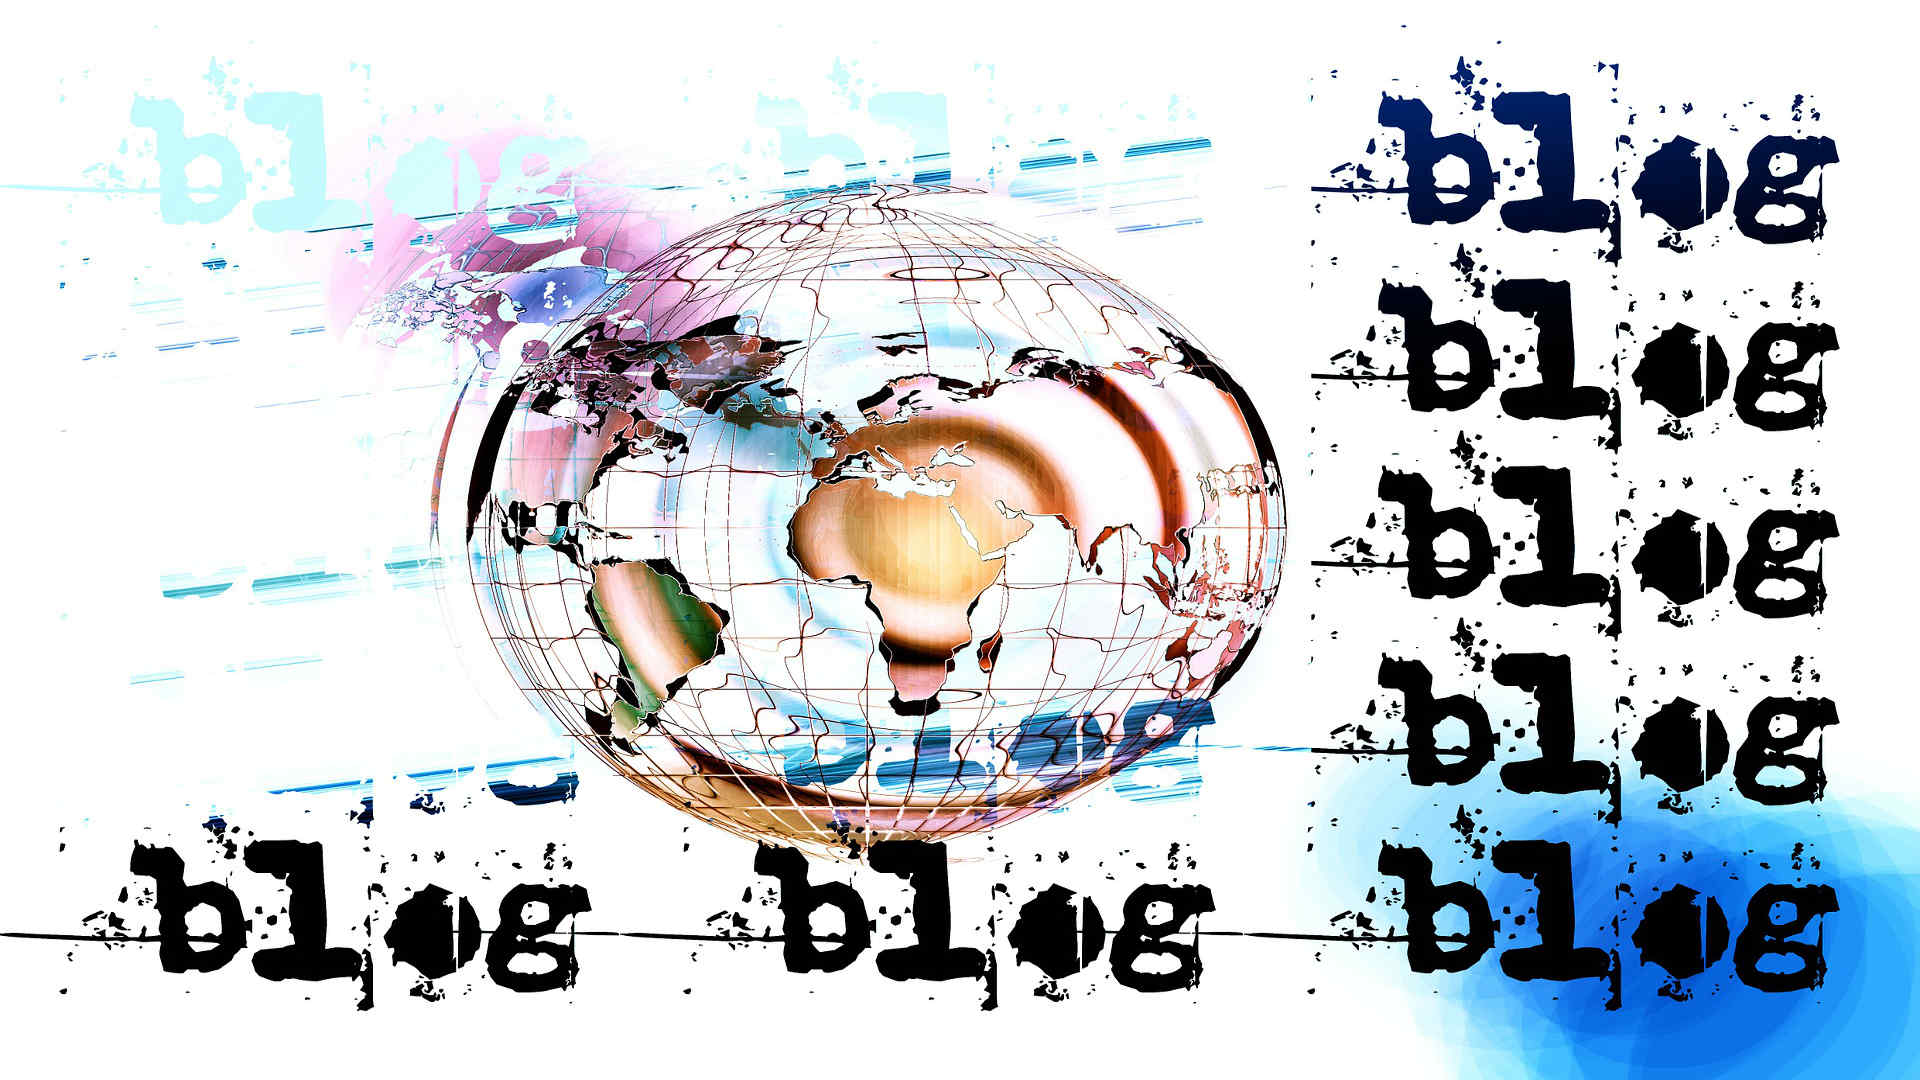 Weblogs | Knowledge Management education & training worldwide